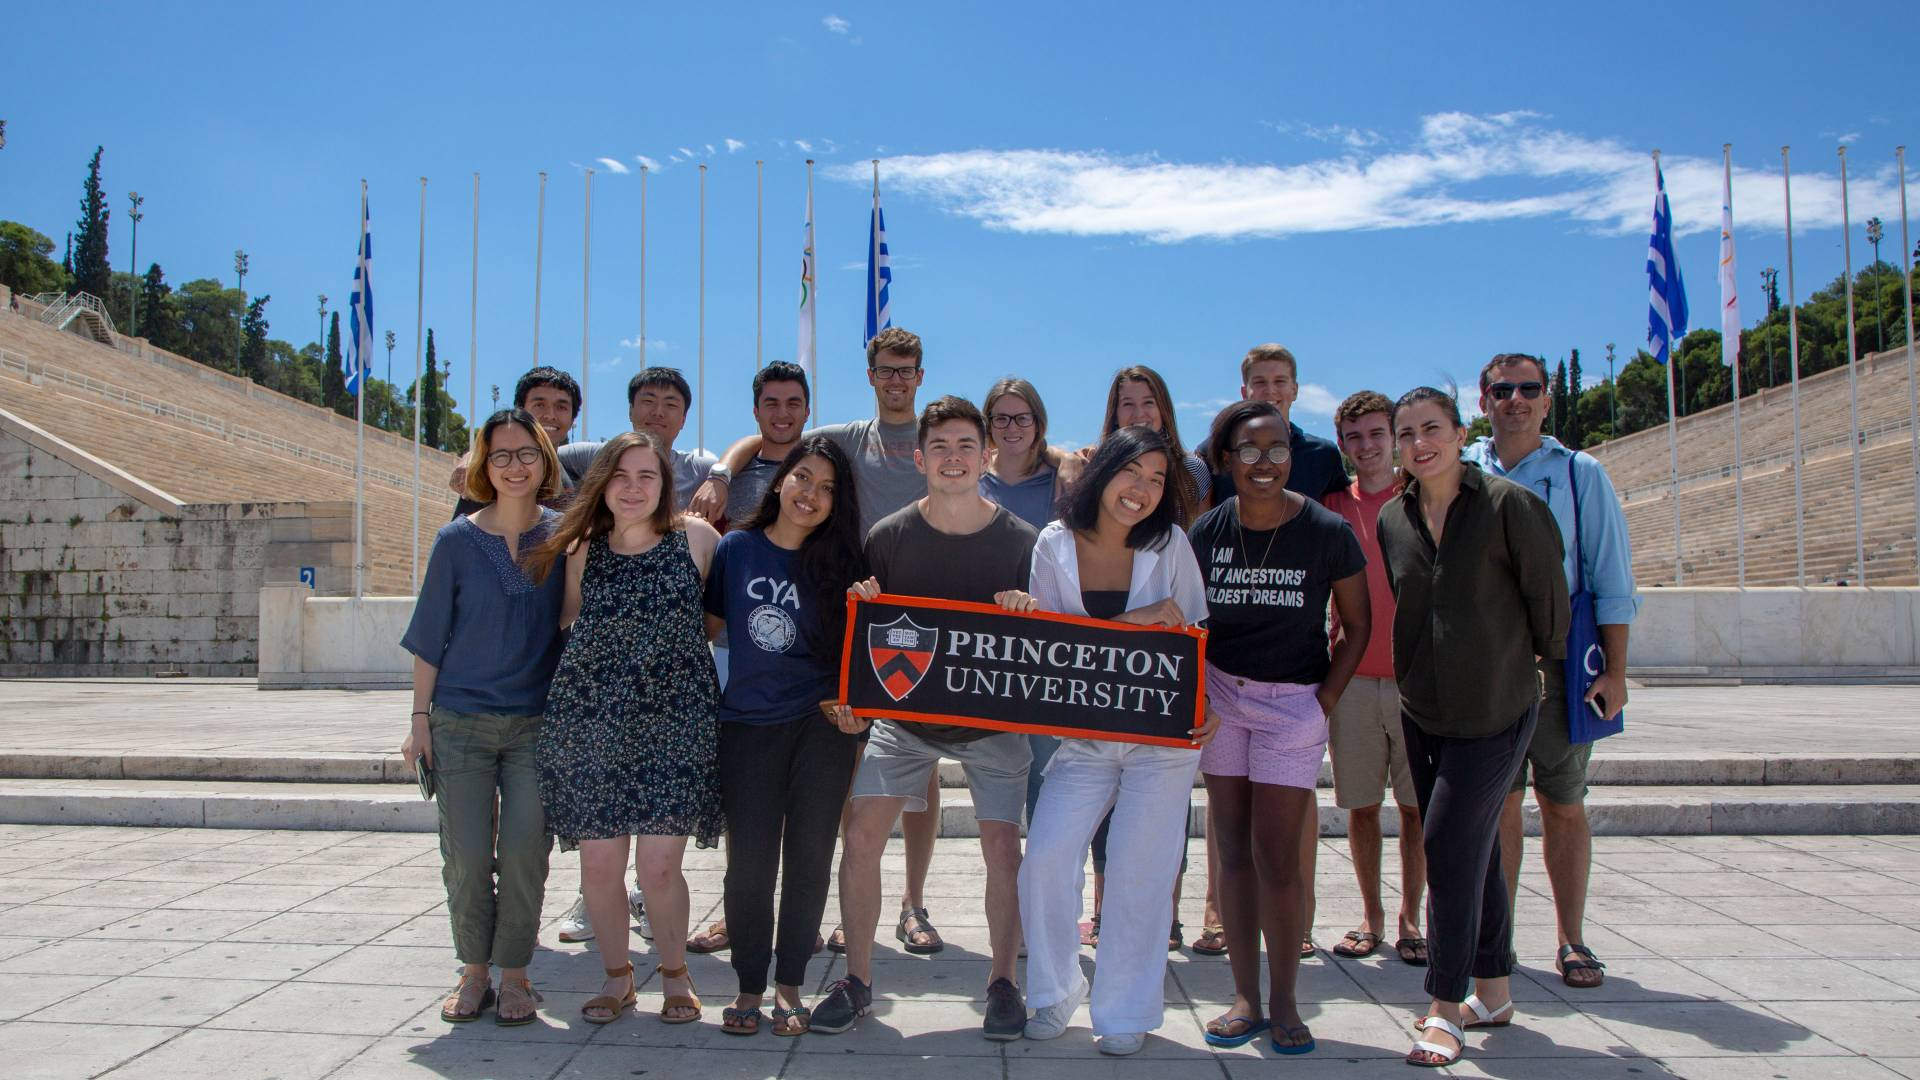 Students and professor standing in front of stadium holding Princeton University banner